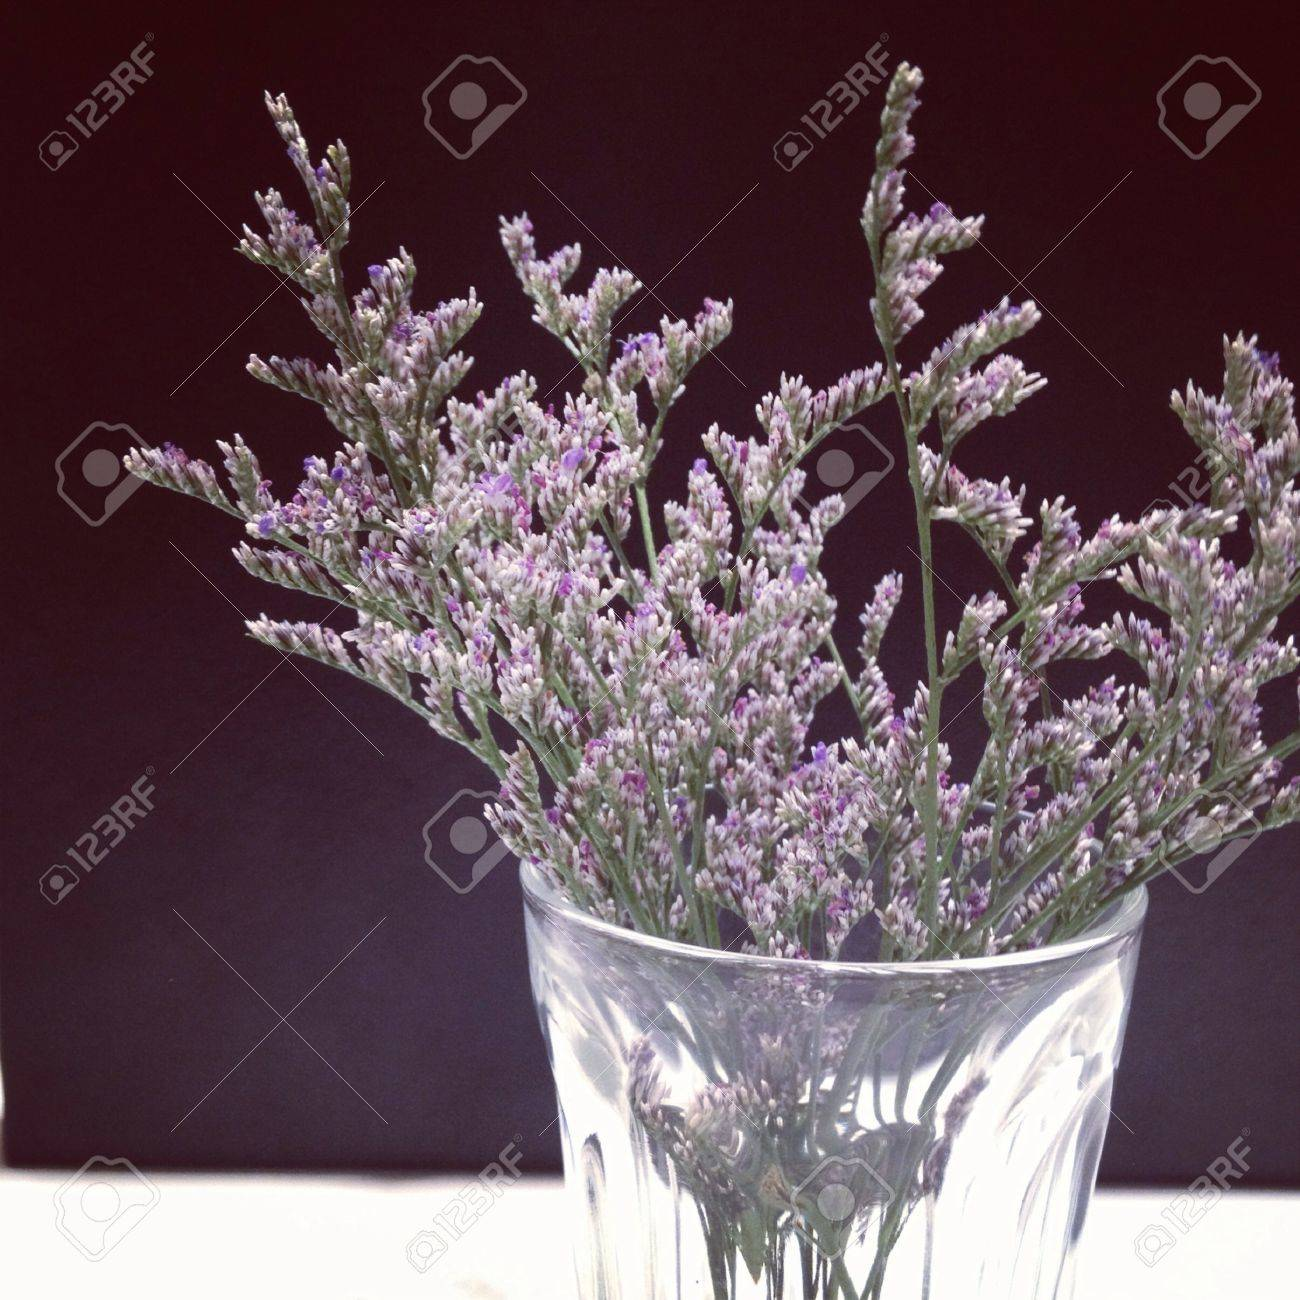 small purple flower in the glass stock photo, picture and royalty, Beautiful flower